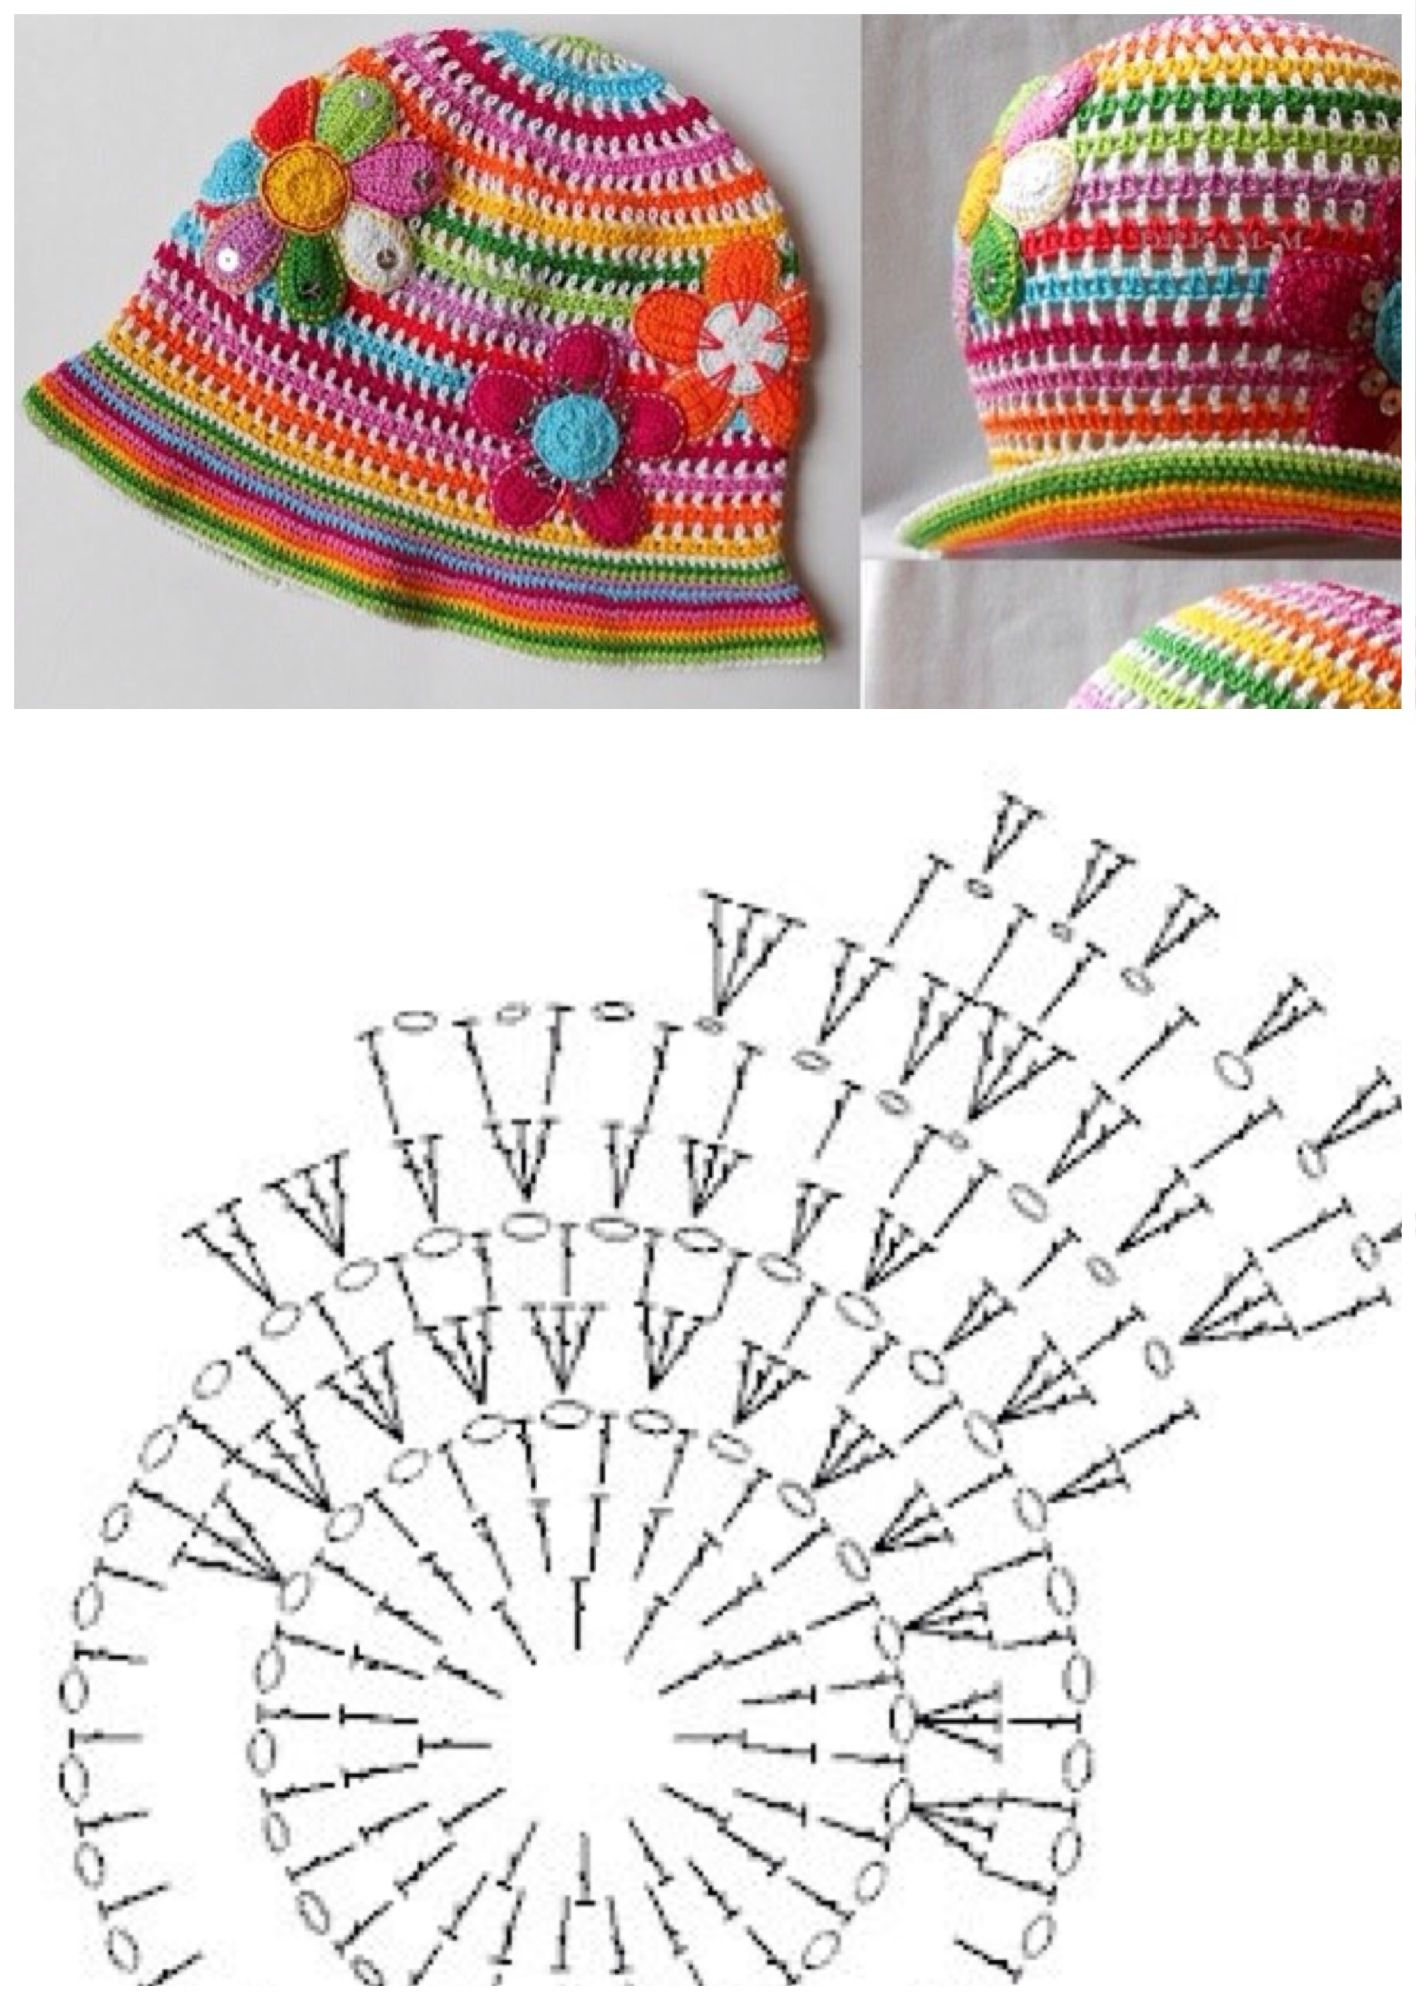 Adorable rainbow crochet hat + diagram / chart | Crochet hats ...